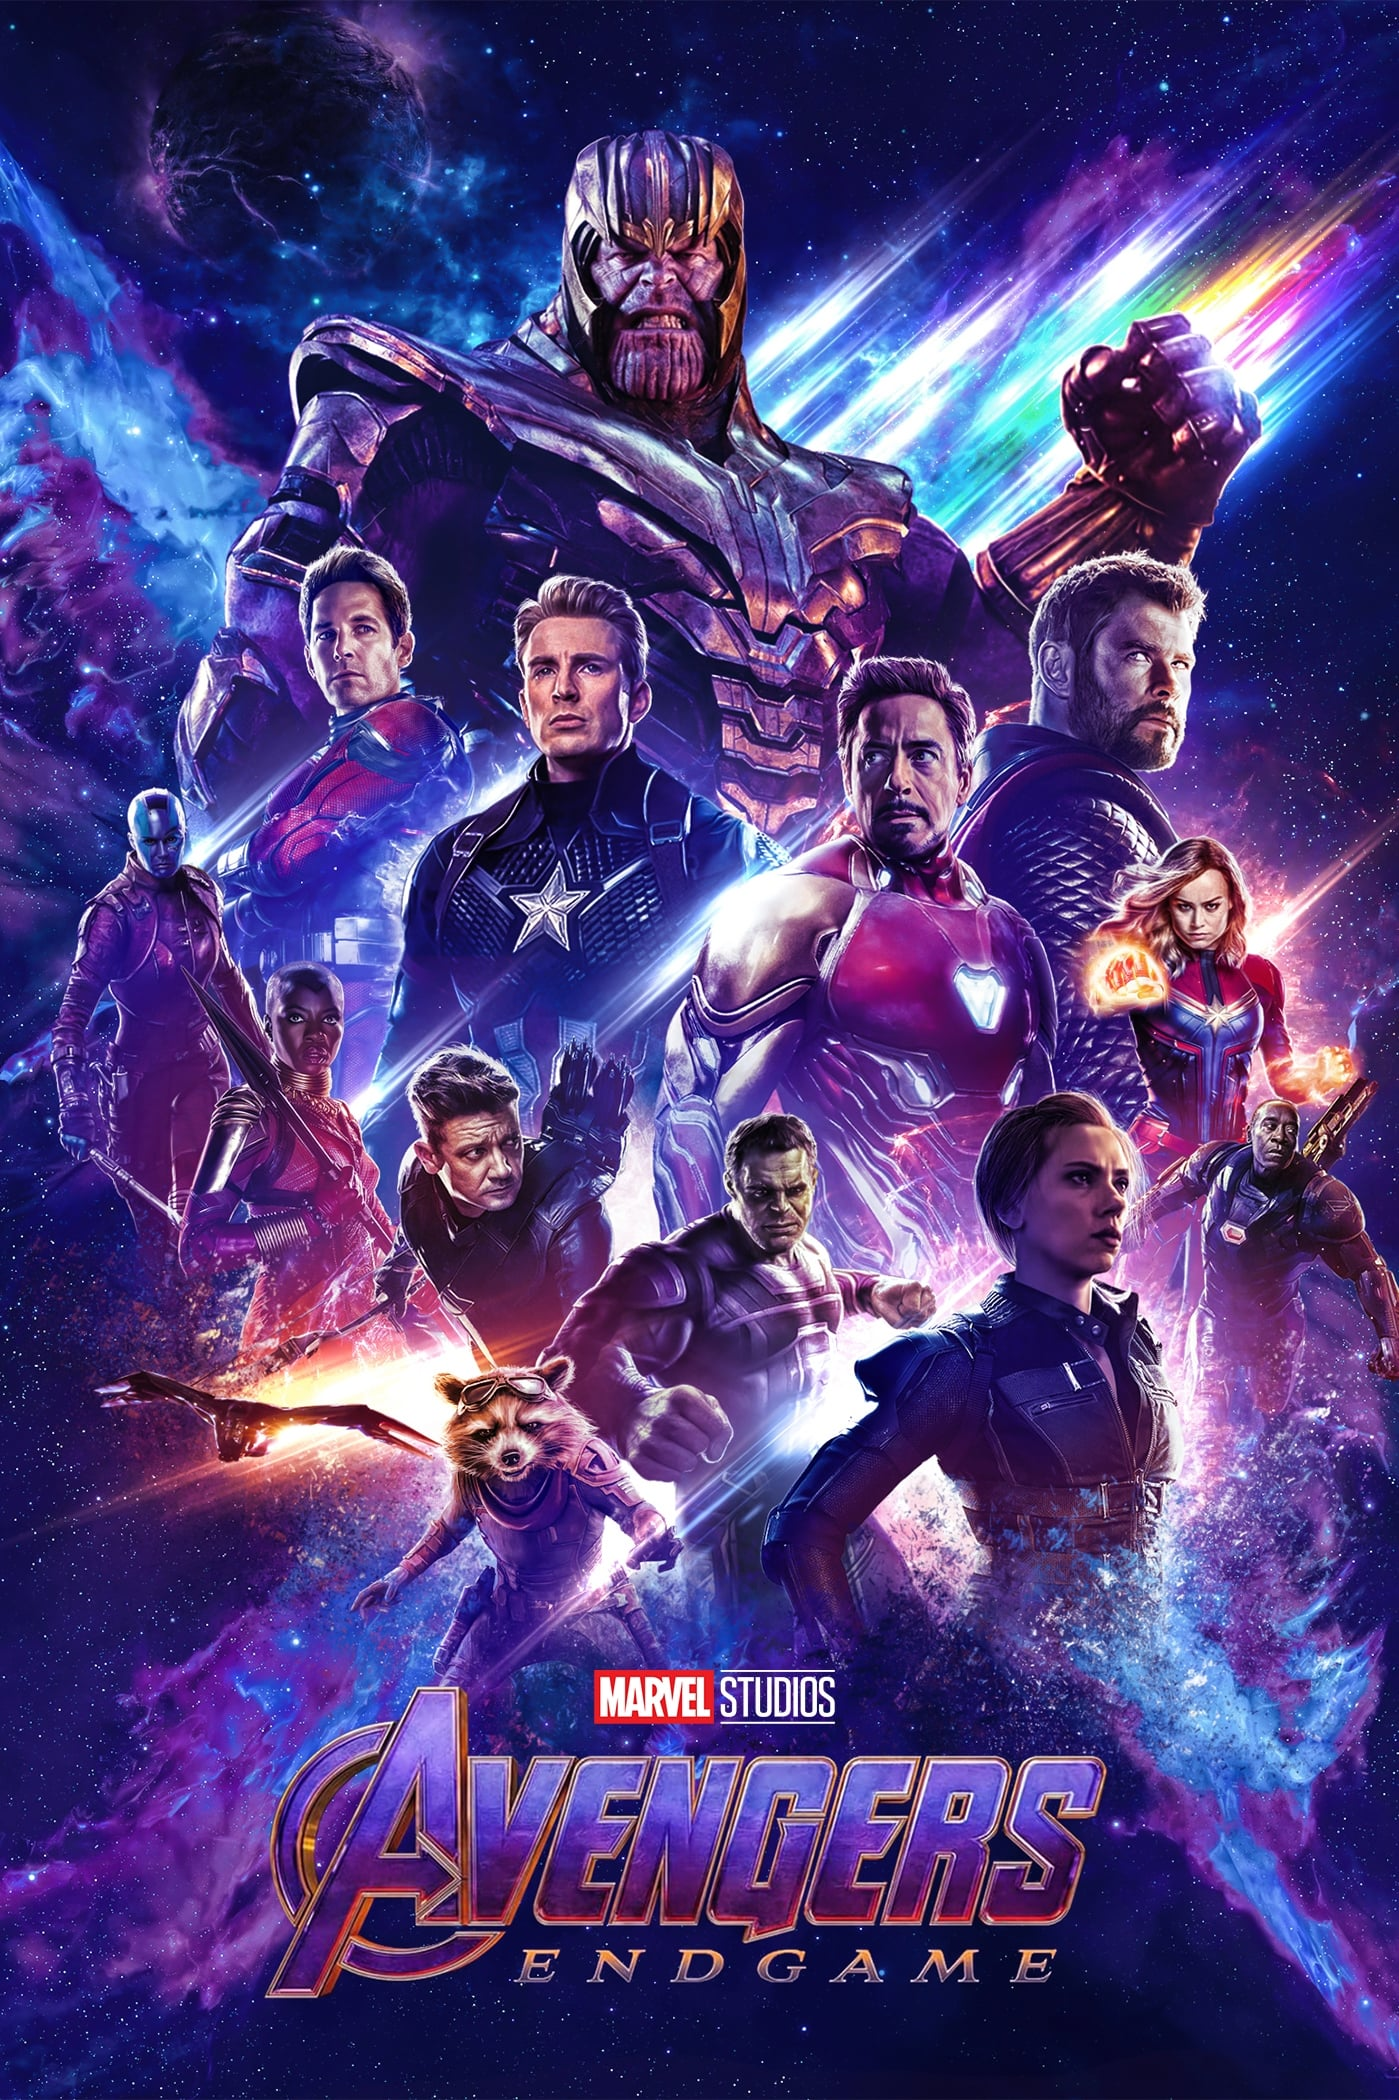 Avengers: Endgame (2019) [Hindi 5.1+English 5.1] | x265 10Bit BluRay | 1080p | 720p | 480p | Download | Watch Online | GDrive | Direct Links